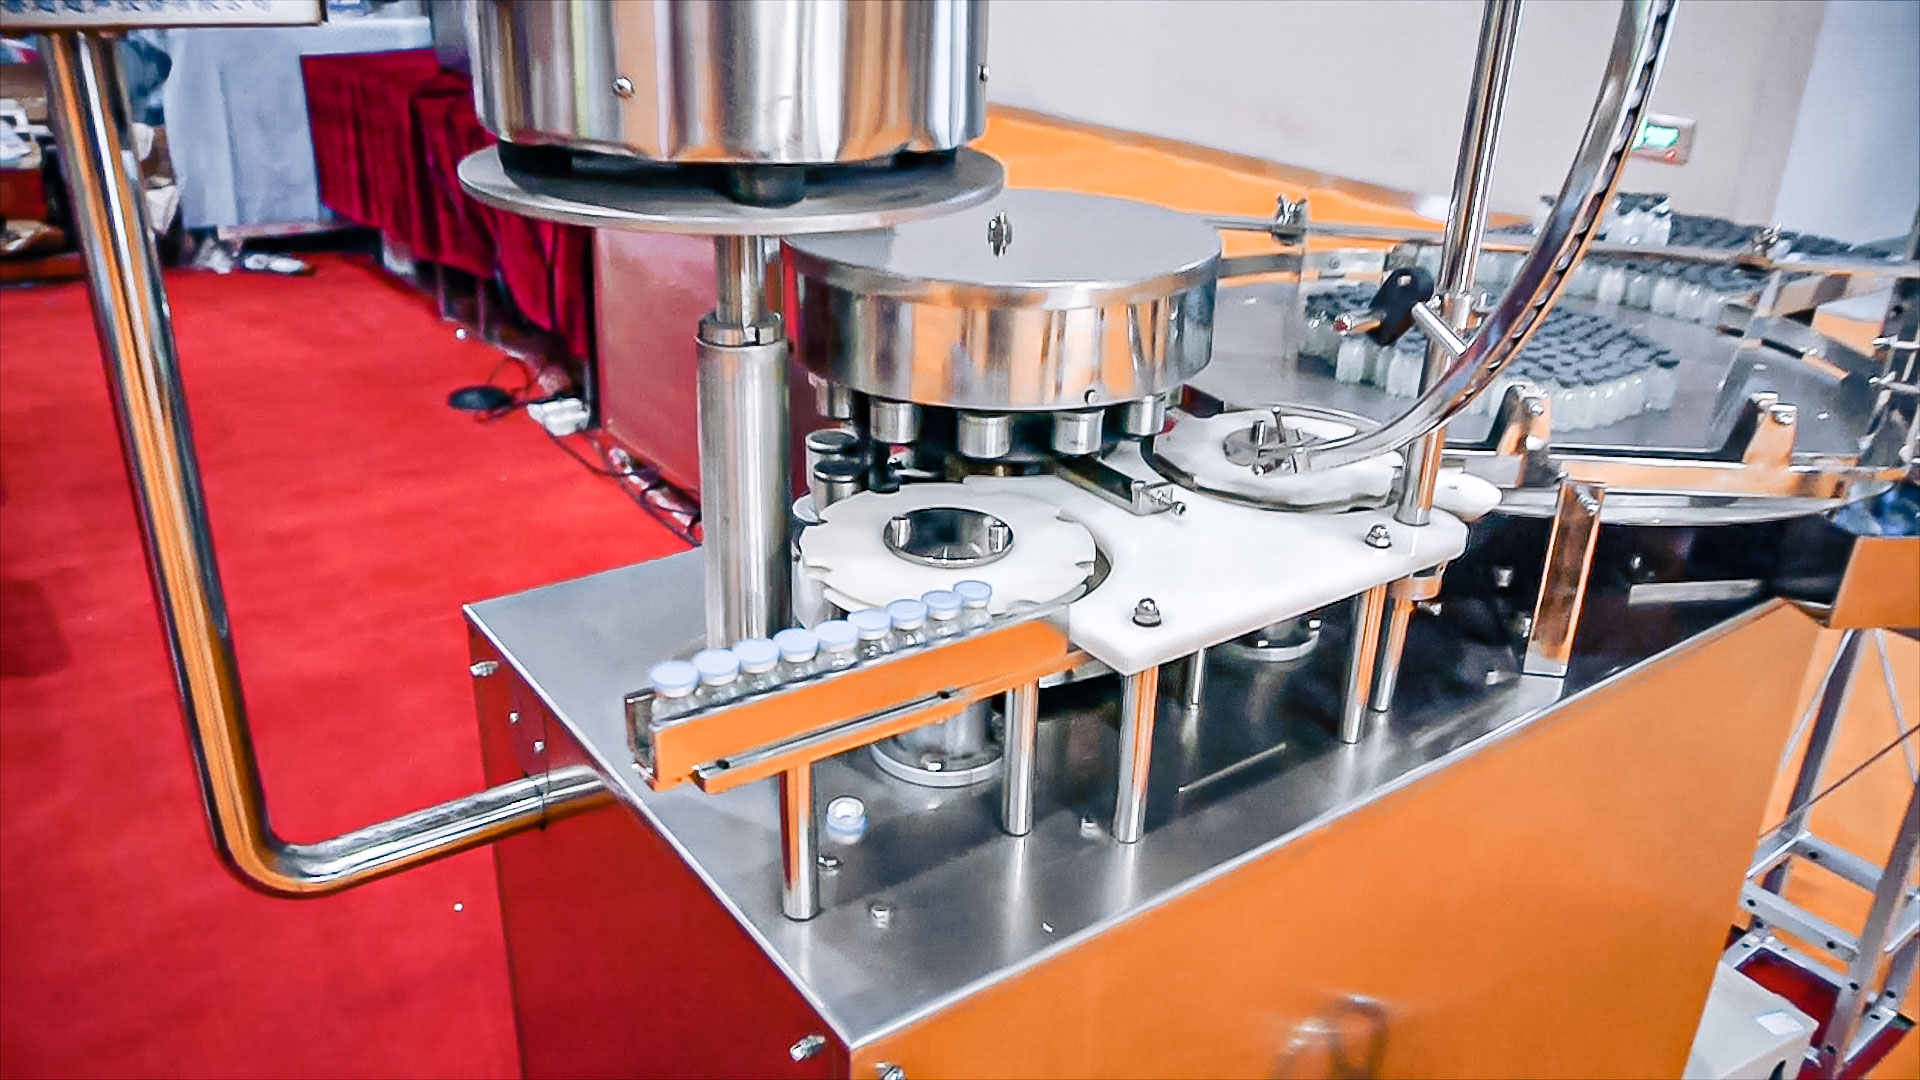 Automatic equipment for filling liquids into penicillin bottles in pharmaceutical production